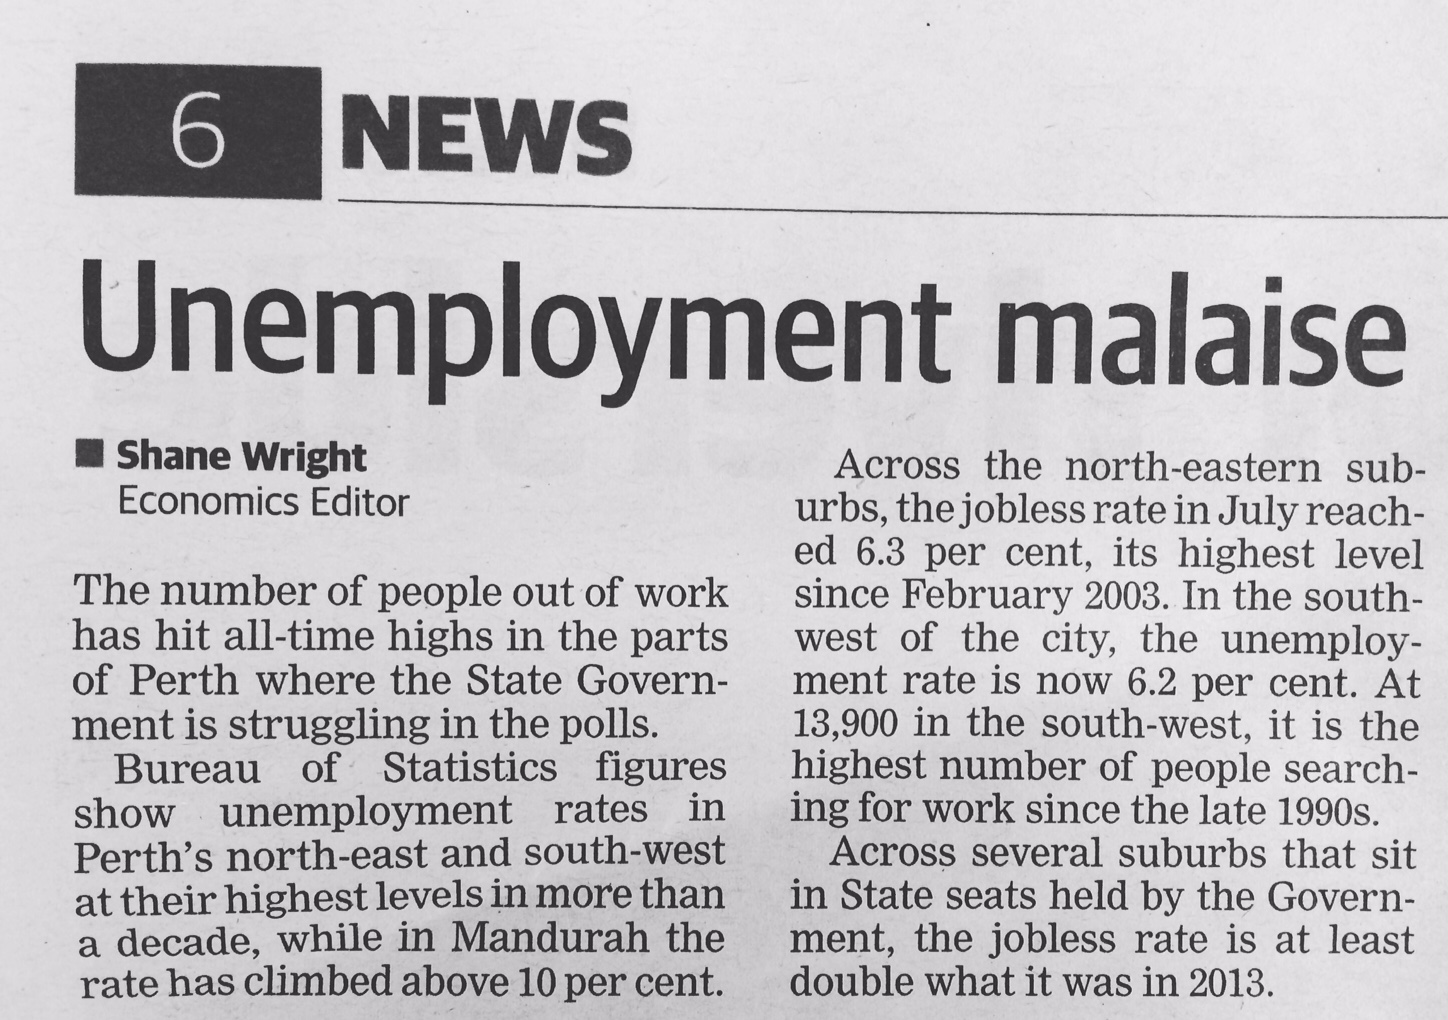 The West on unemployment page6 26 Aug 2016.JPG